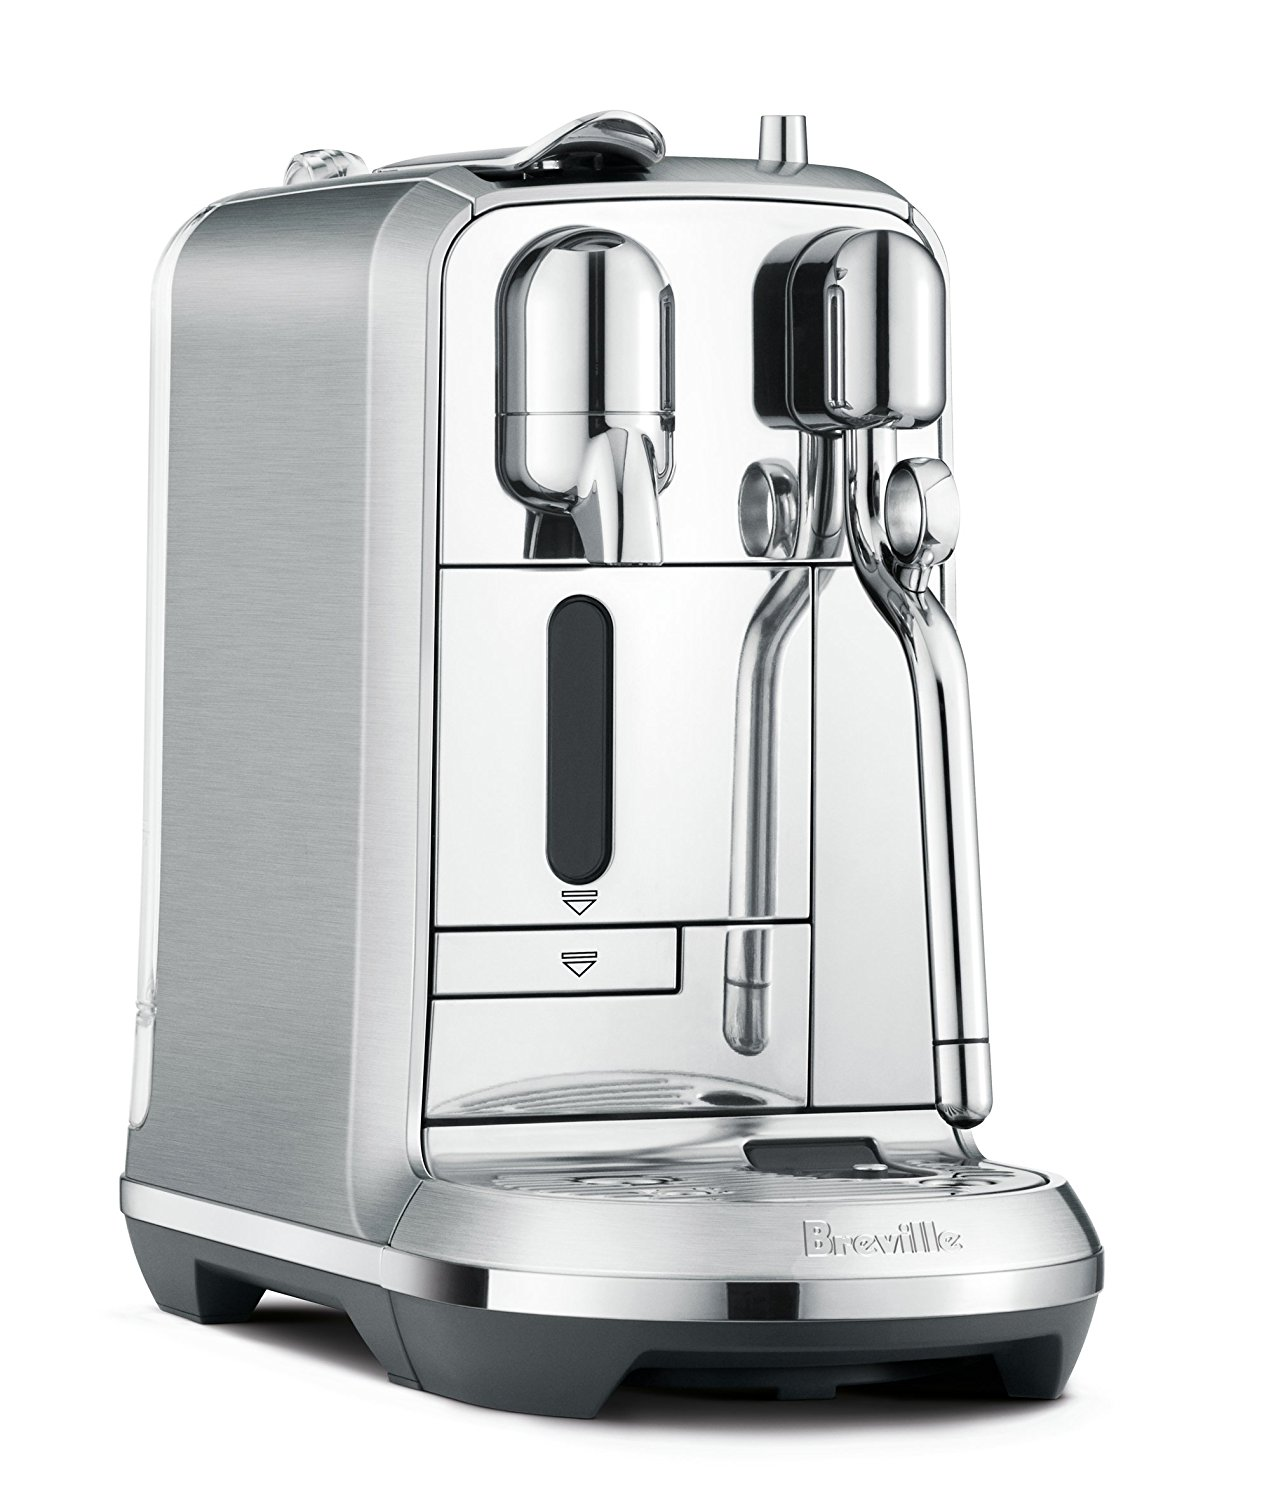 Review of Nespresso Creatista Plus Coffee Machine